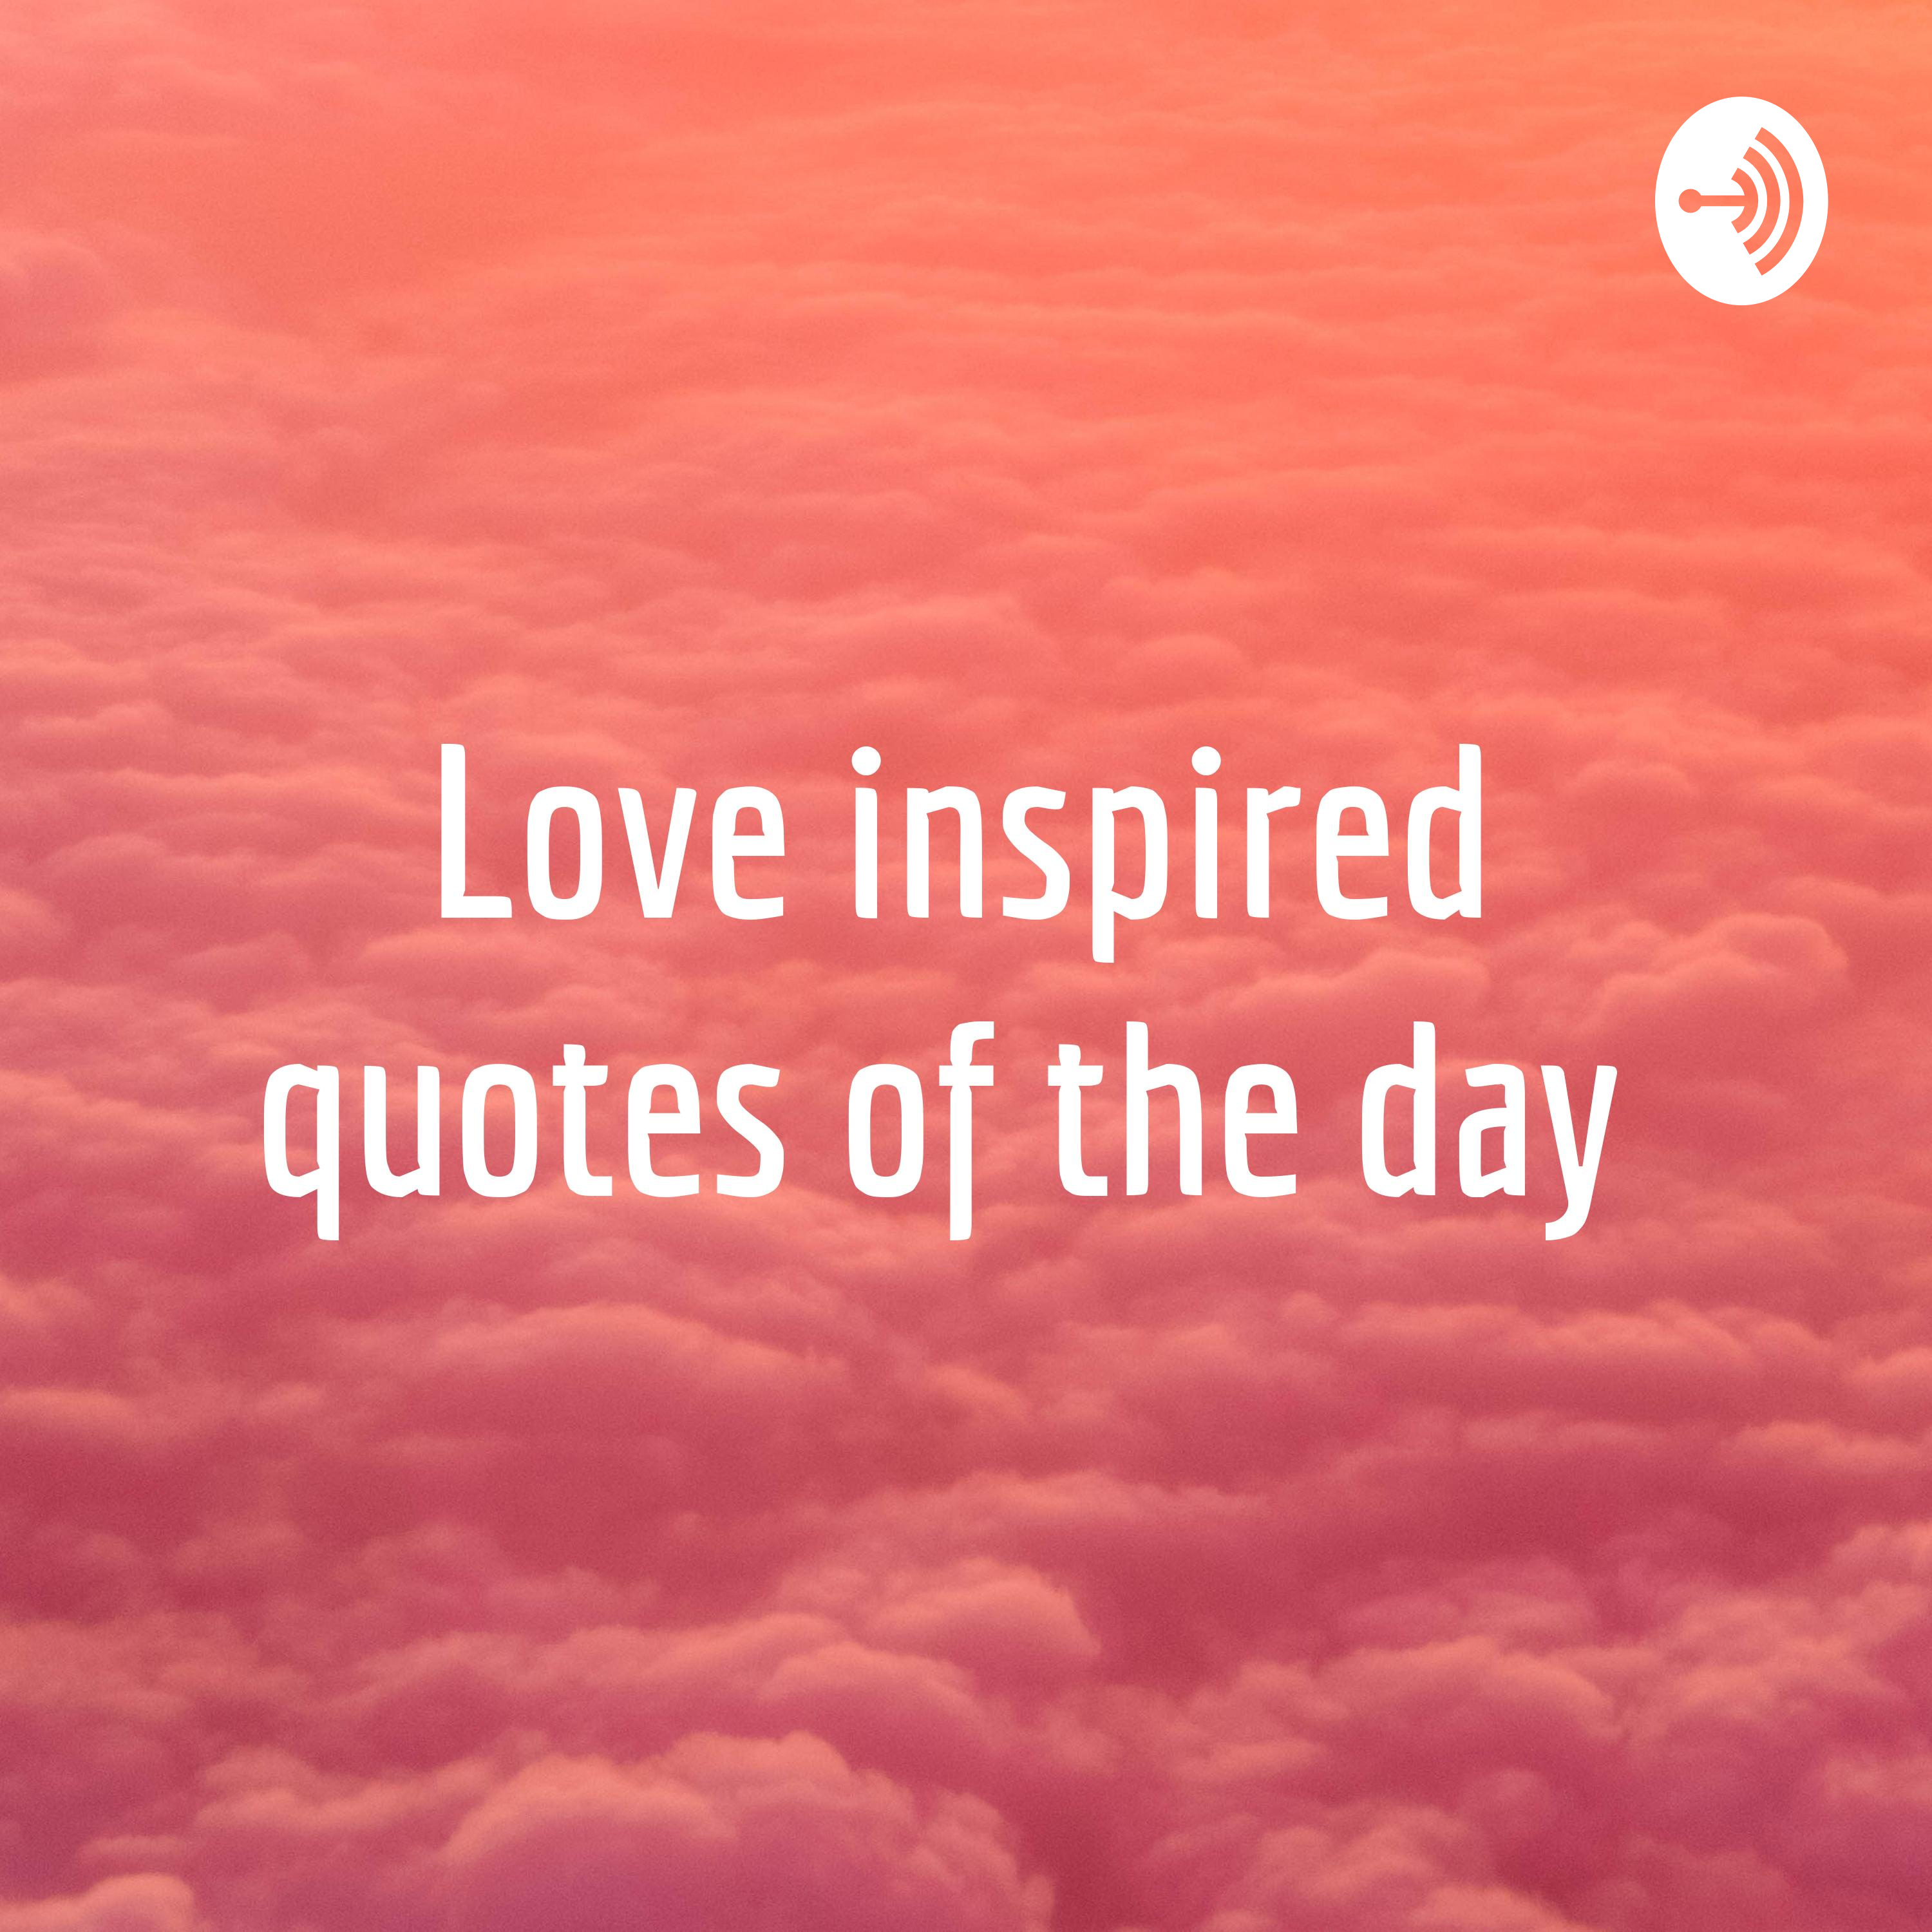 Love inspired quotes of the day